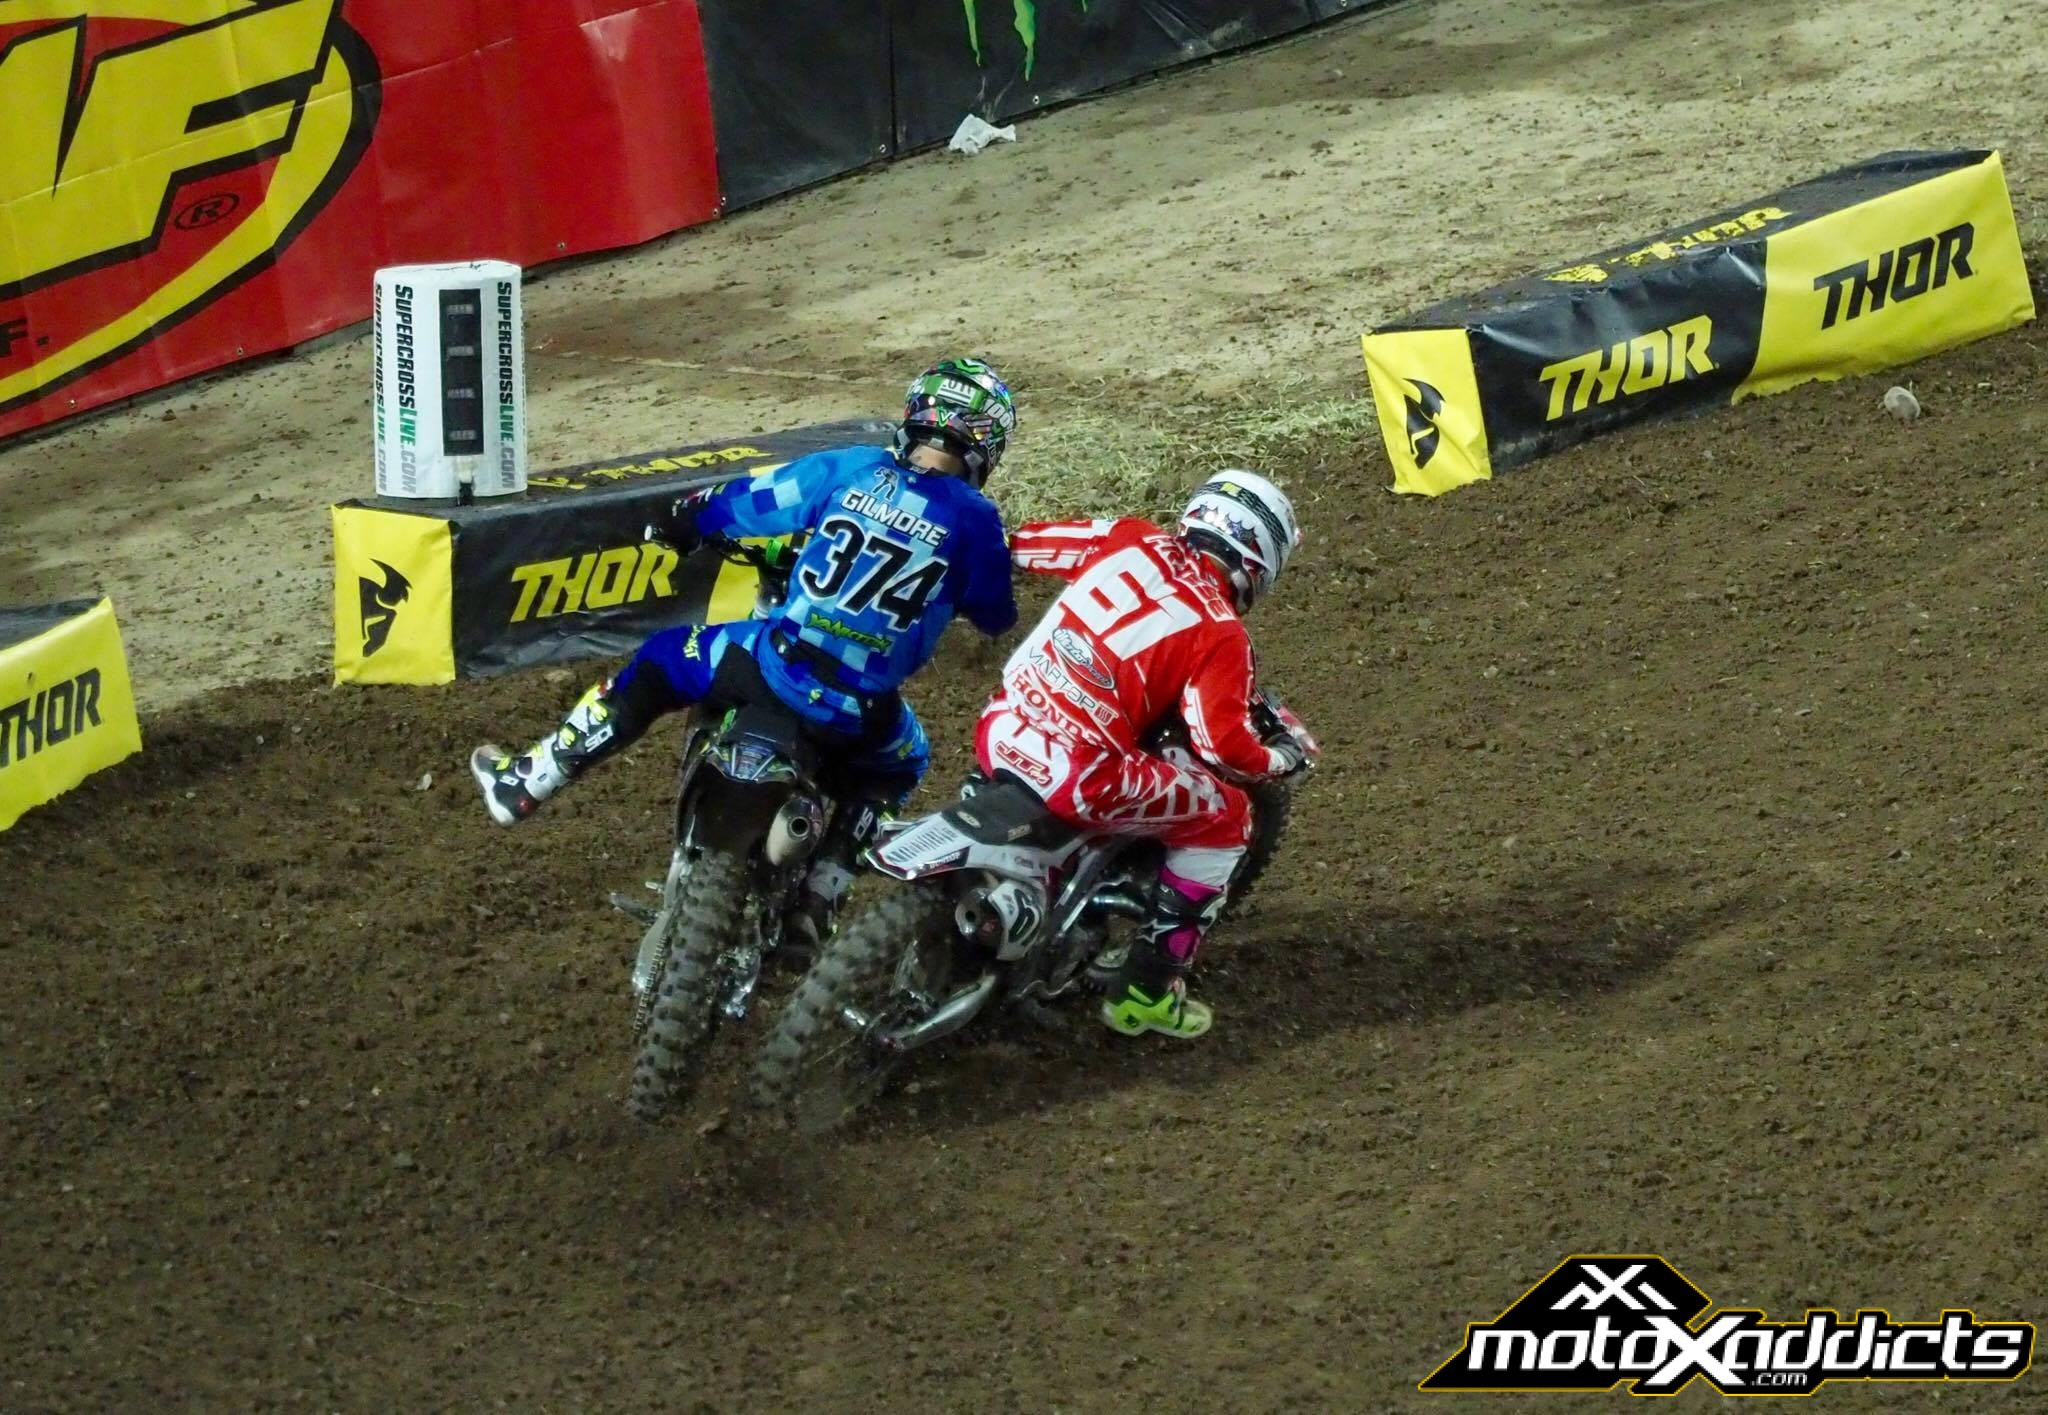 Vince Friese #61 doing what he does best: coming in hot on Cody Gilmore in Glendale. Photo by: Mark Lester